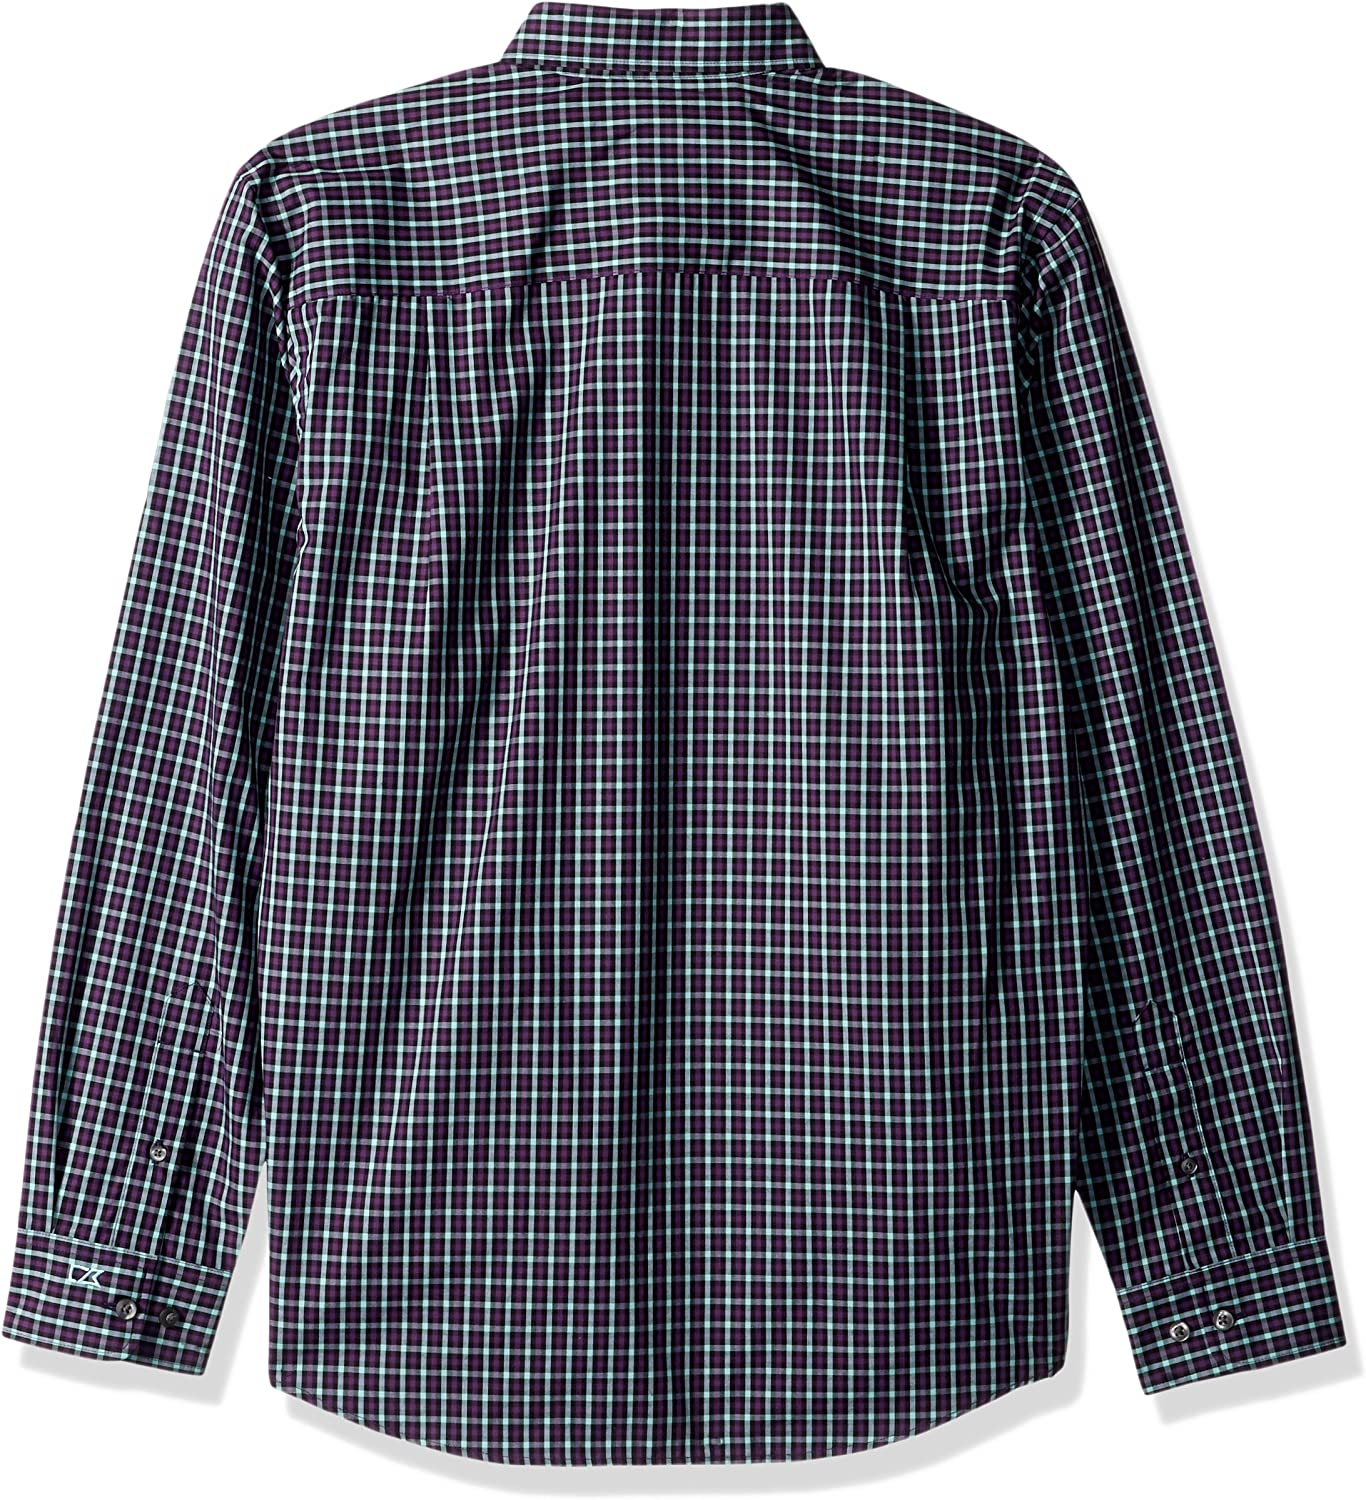 Cutter & Buck Men's Medium Plaid and Check Easy Care Button Down Collared Shirts